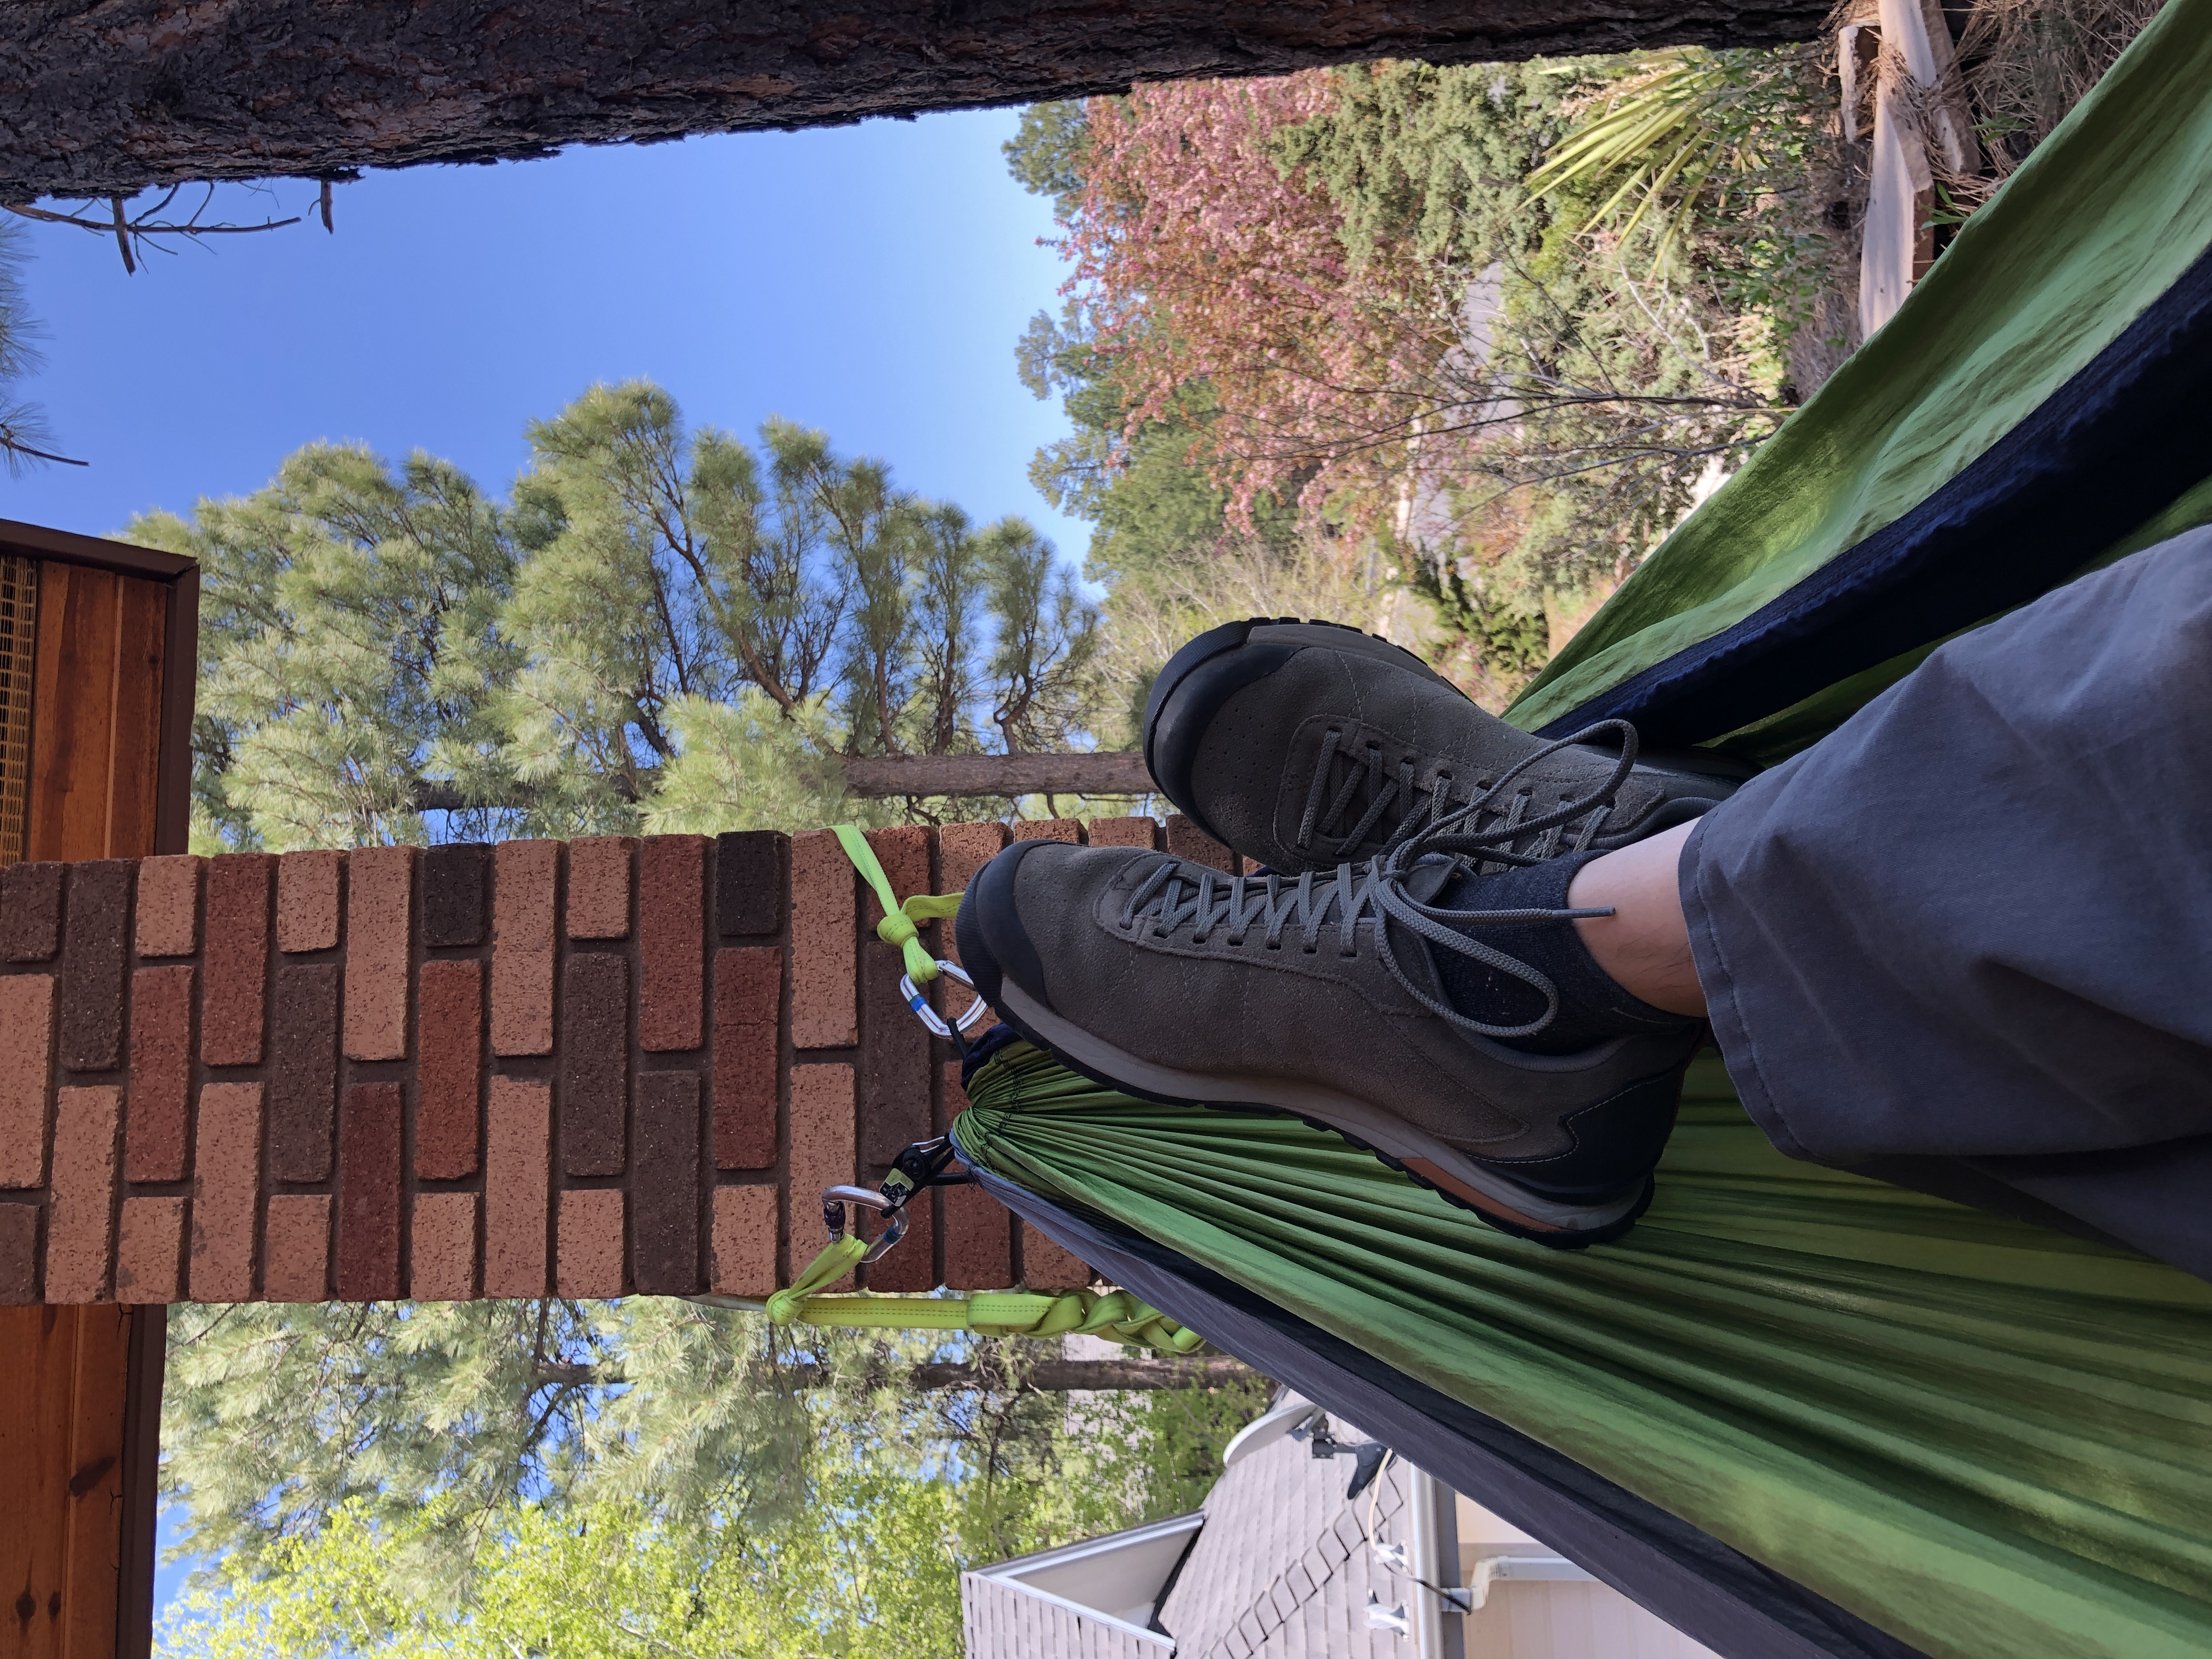 Feet up in a hammock in front of pine trees and blue sky